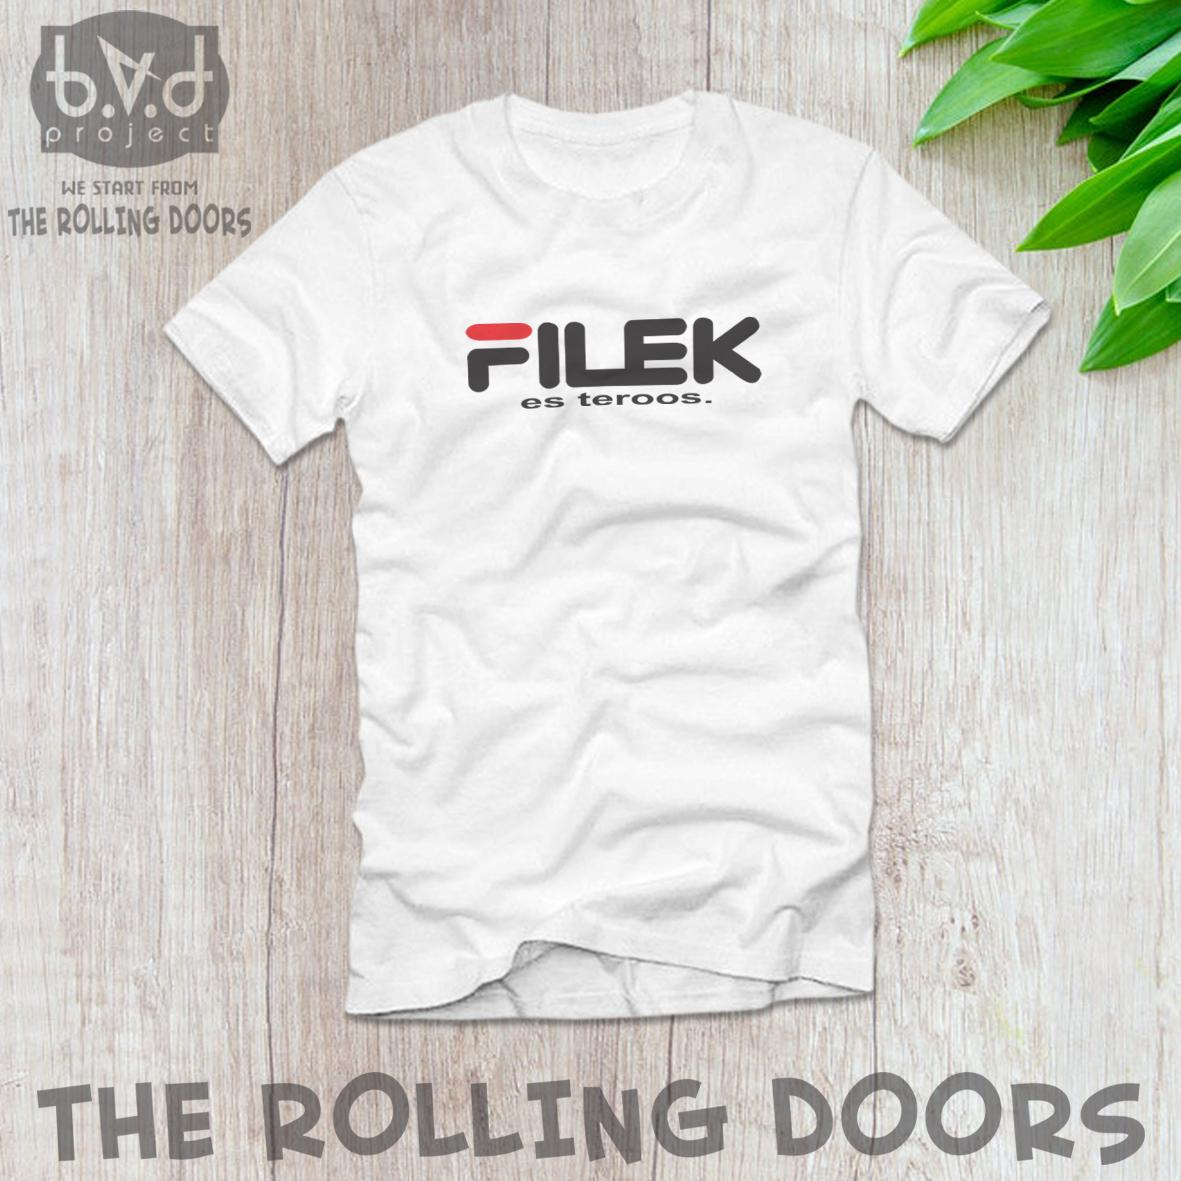 Kaosbad/The Rolling Doors/Kaos Filek/Kaos Hits/Kaos Explore Indonesia/